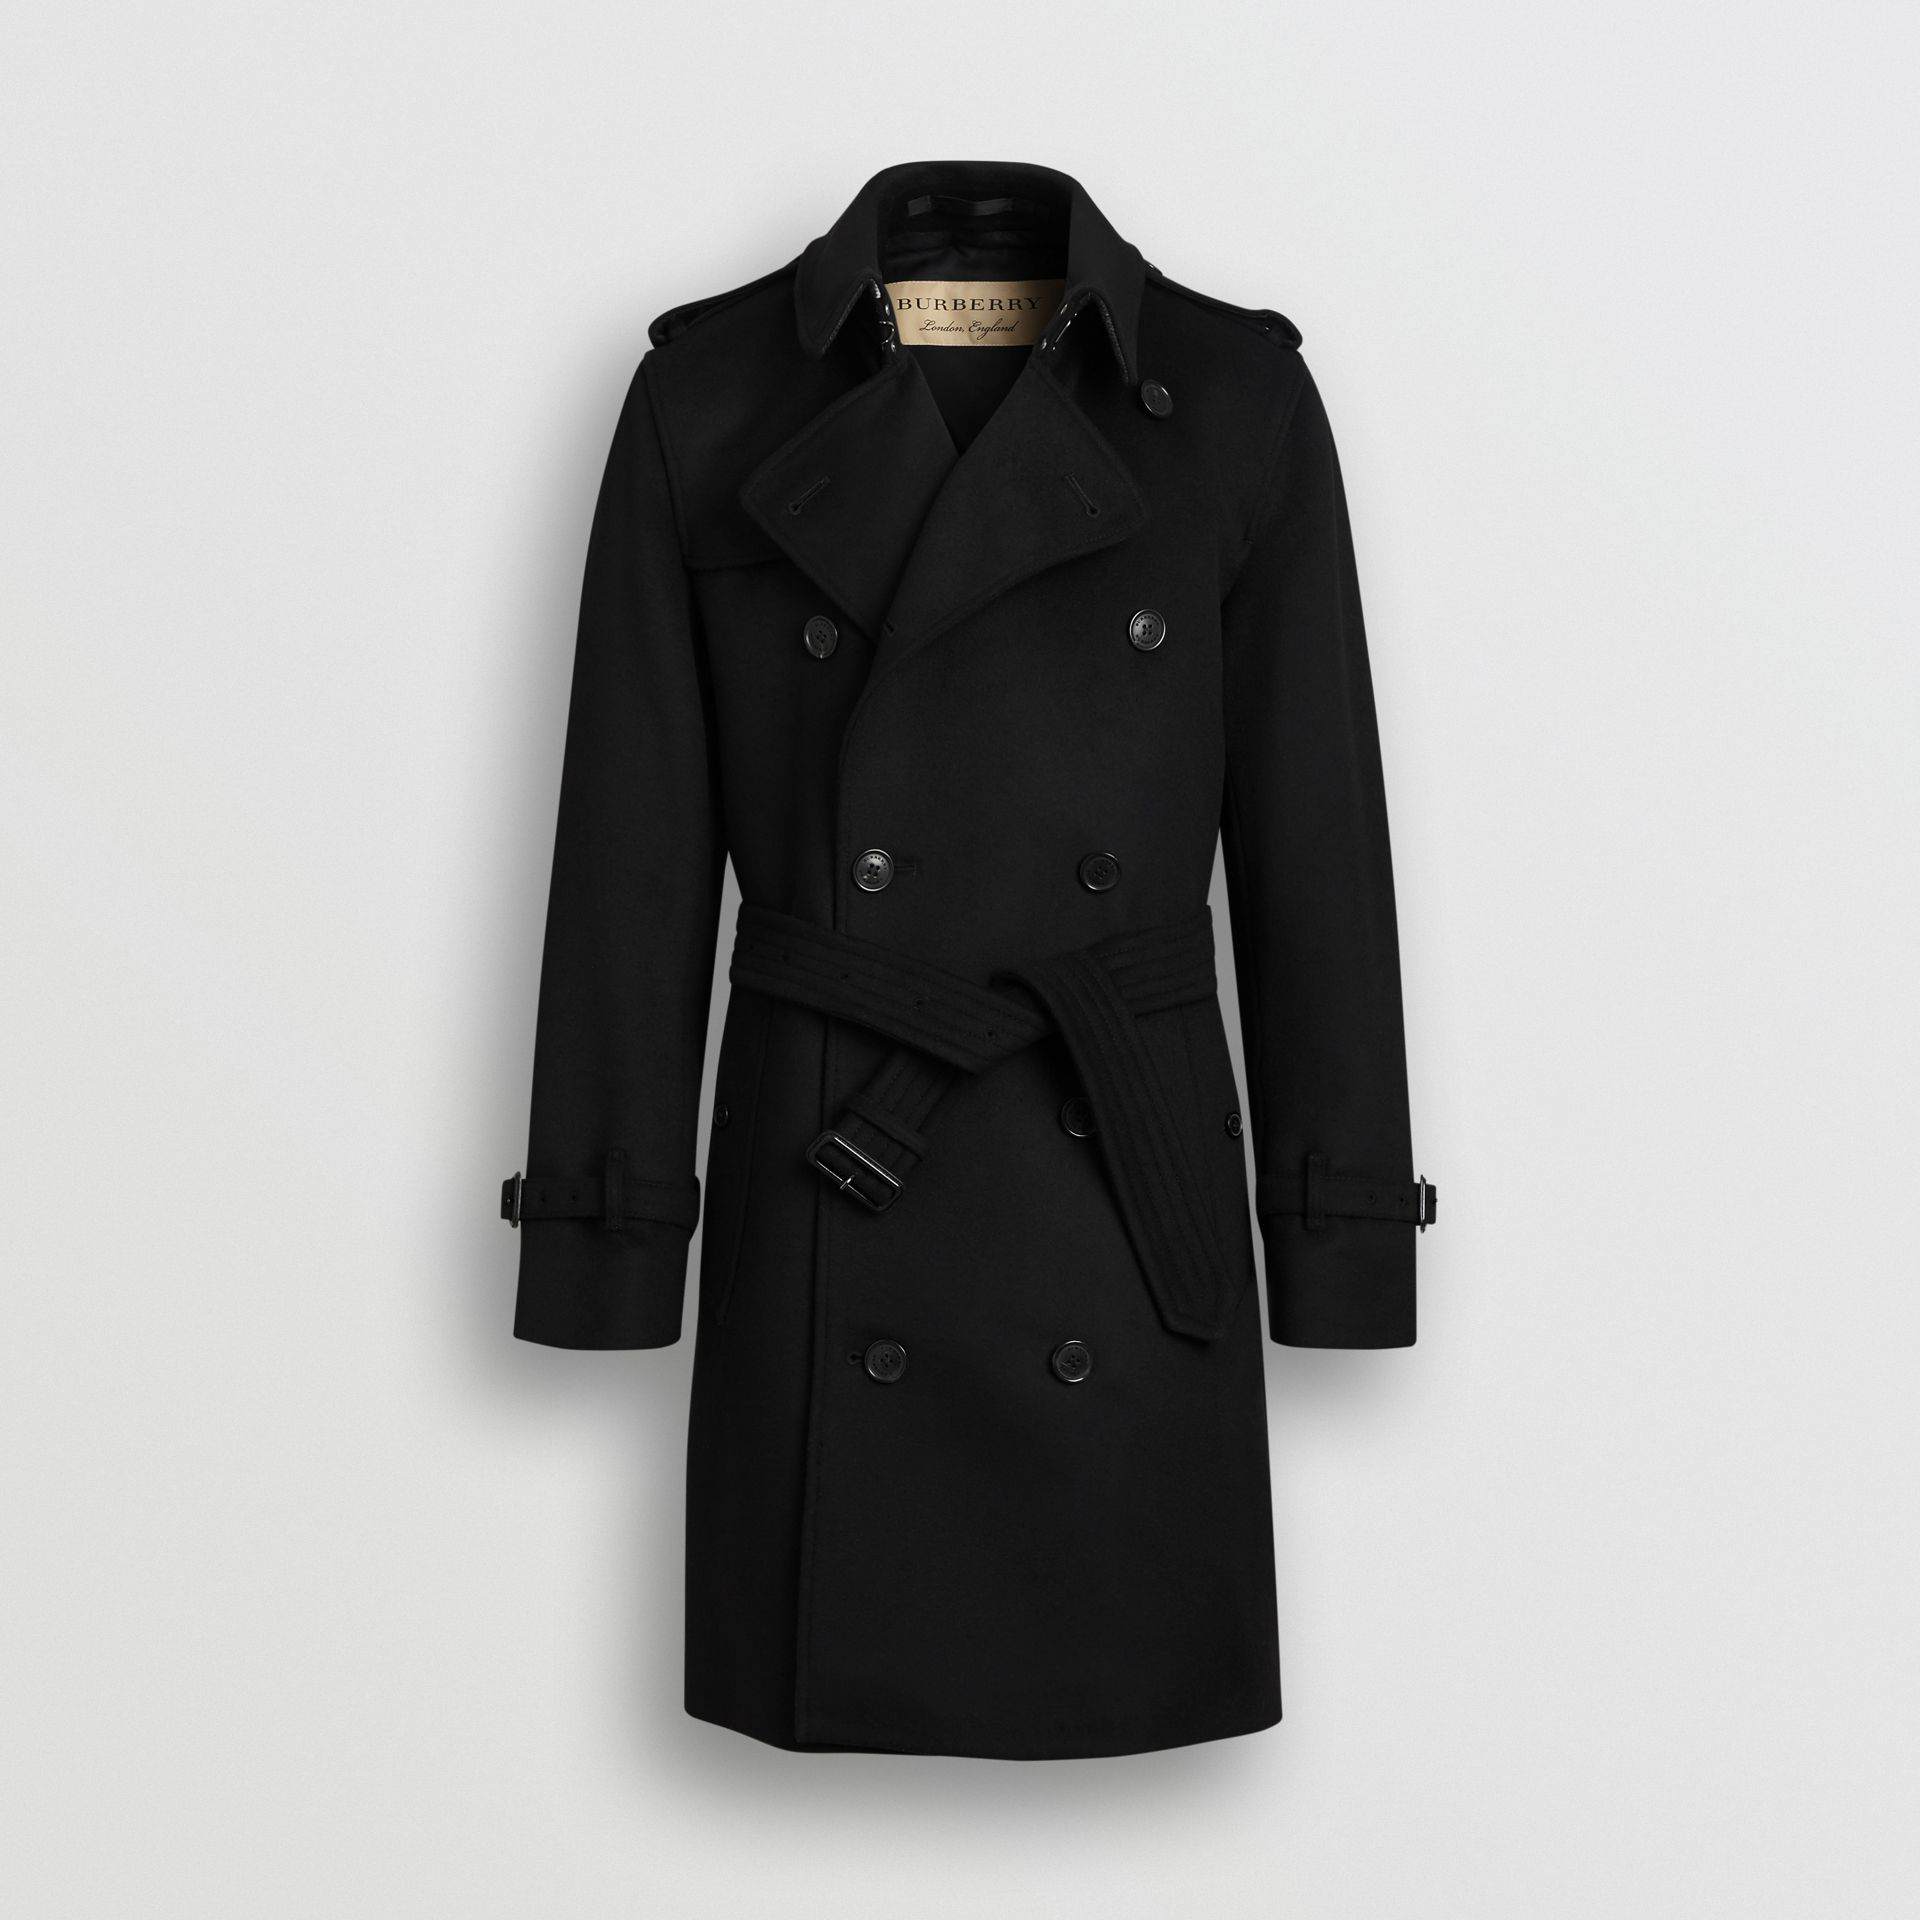 Wool Cashmere Trench Coat in Black - Men | Burberry United States - gallery image 3